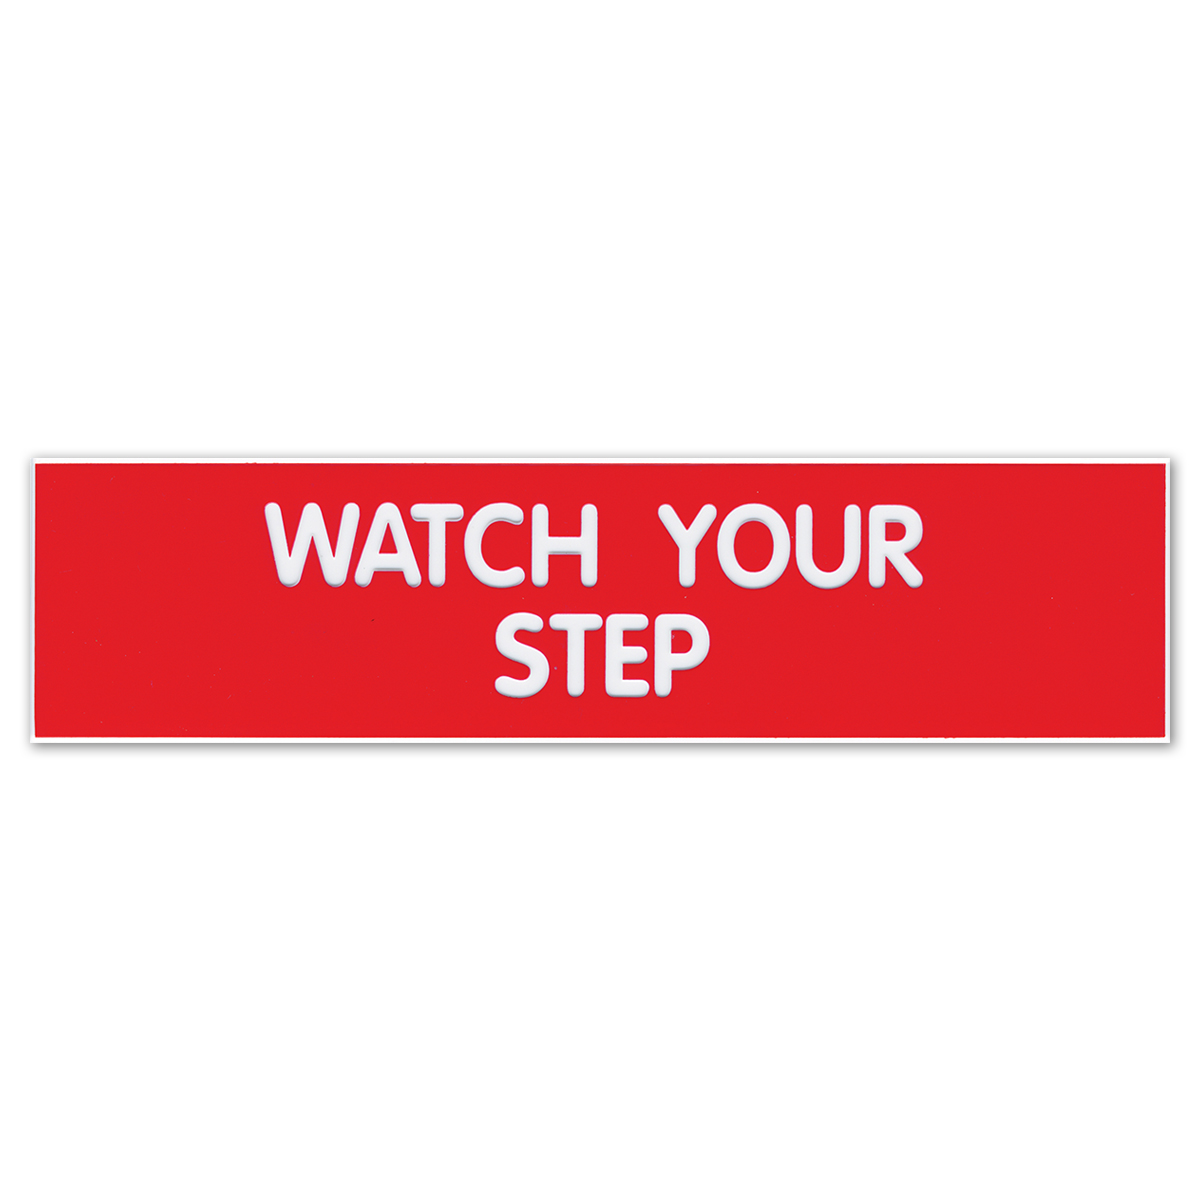 WATCH YOUR STEP - Plastic Sign - 098008